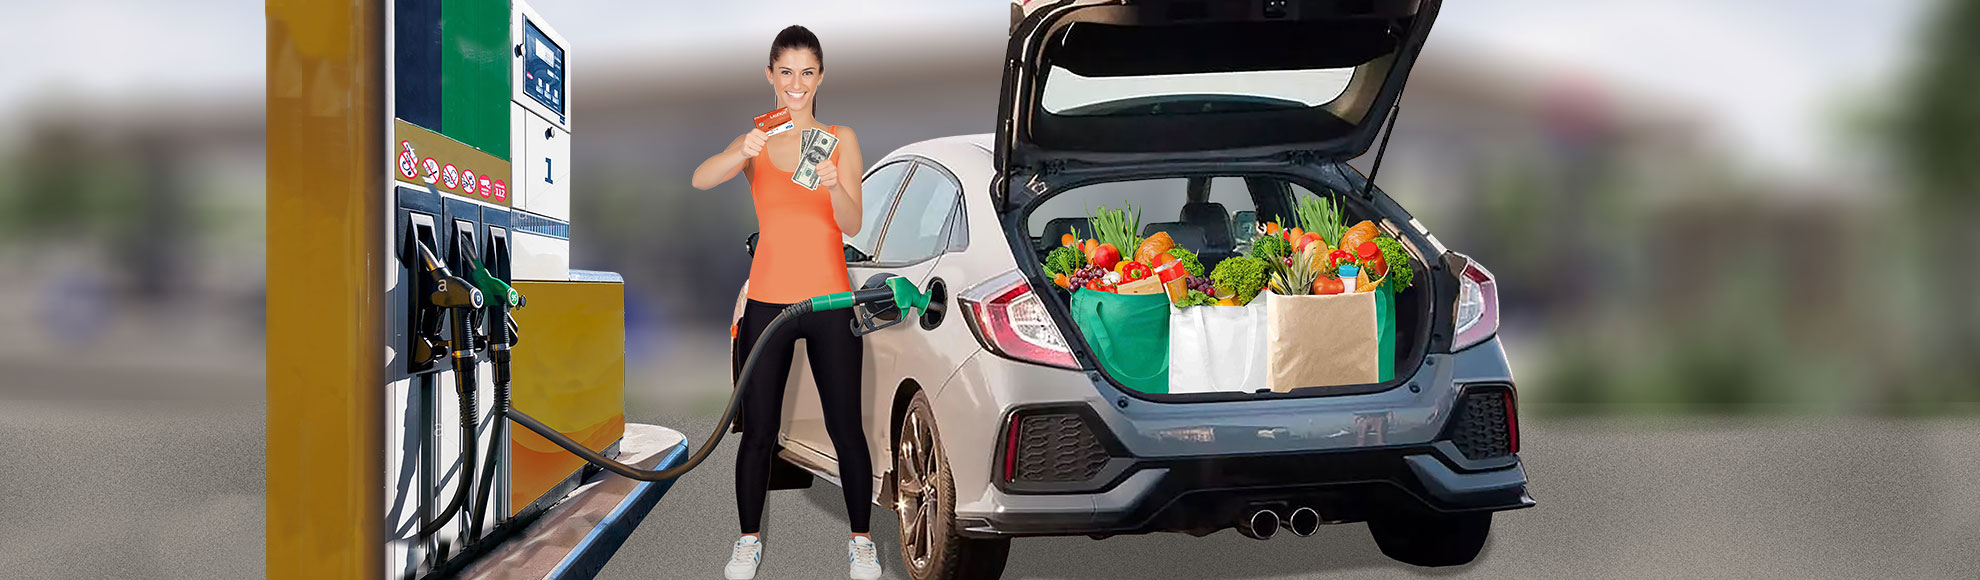 Woman pumping gas with a trunk full of groceries